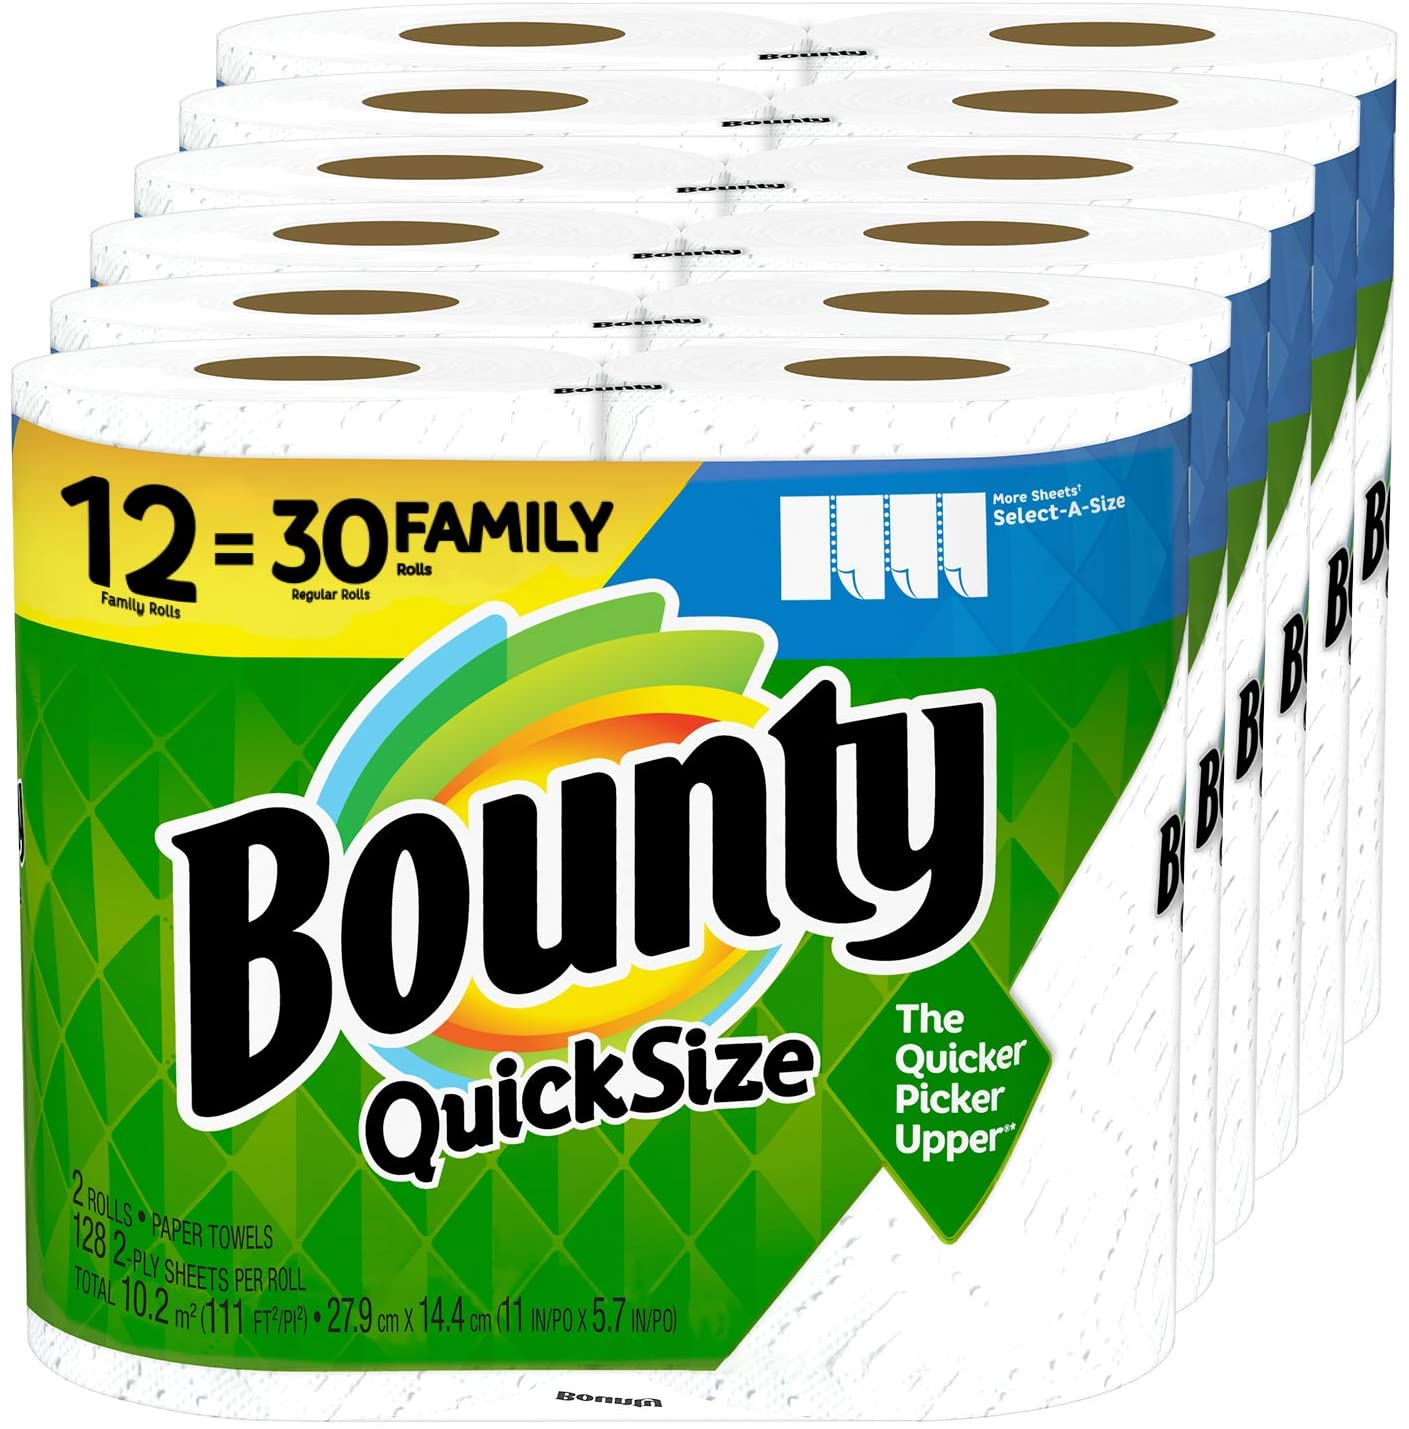 Bounty Quick-Size Paper Towel